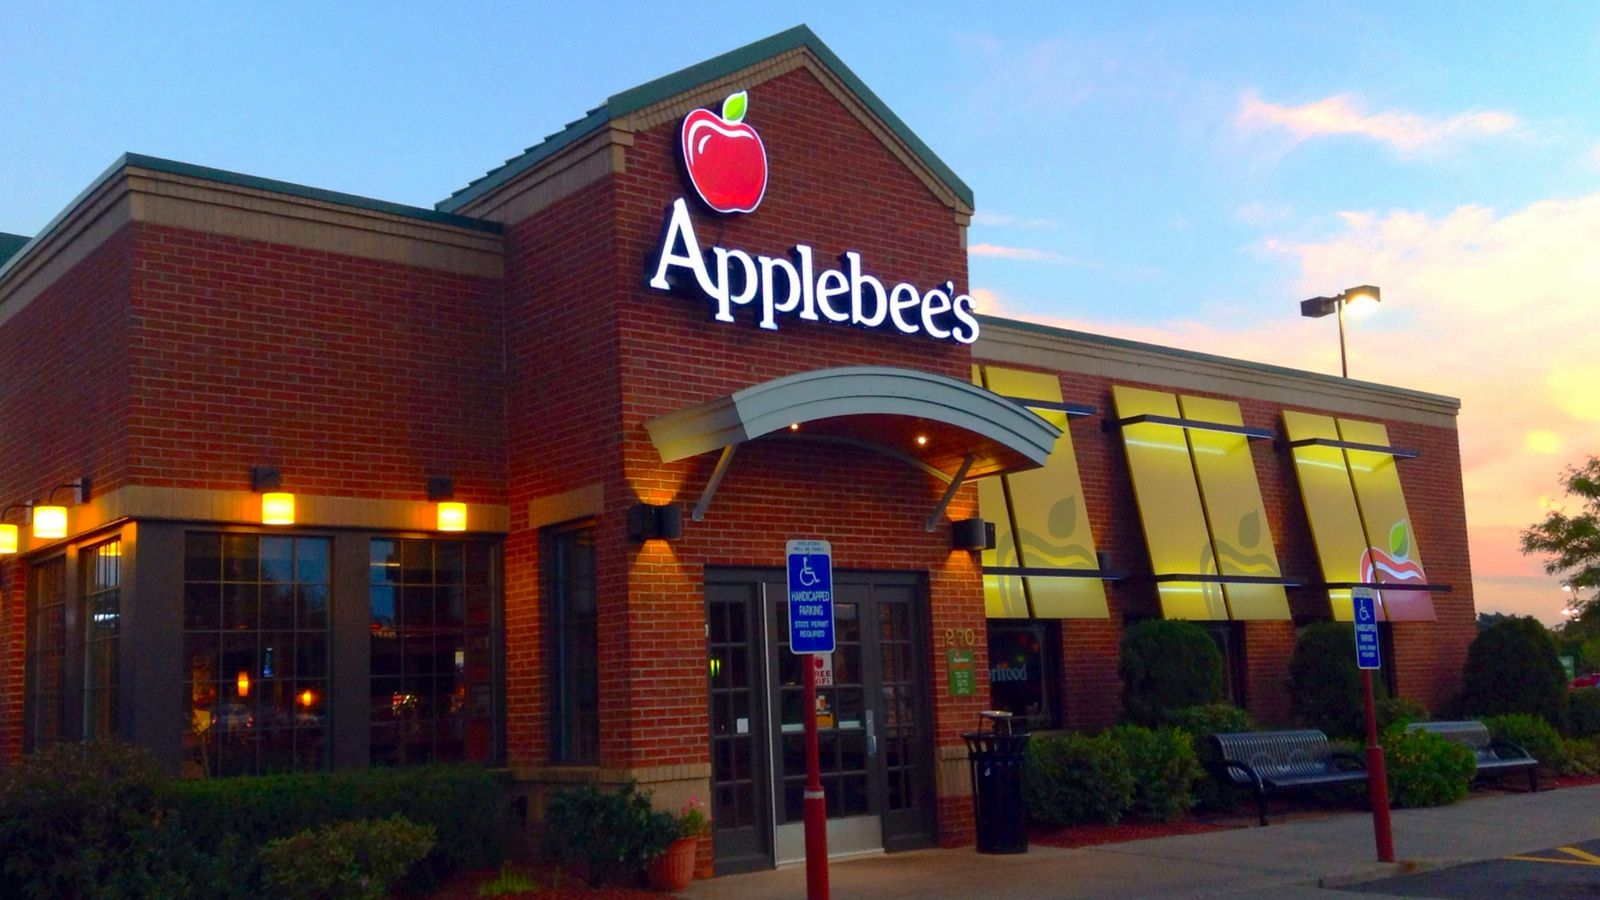 See a list of the Applebee's locations and hours in Maple-Grove, see offers, get directions, and find menus for our Maple-Grove, MN restaurants.